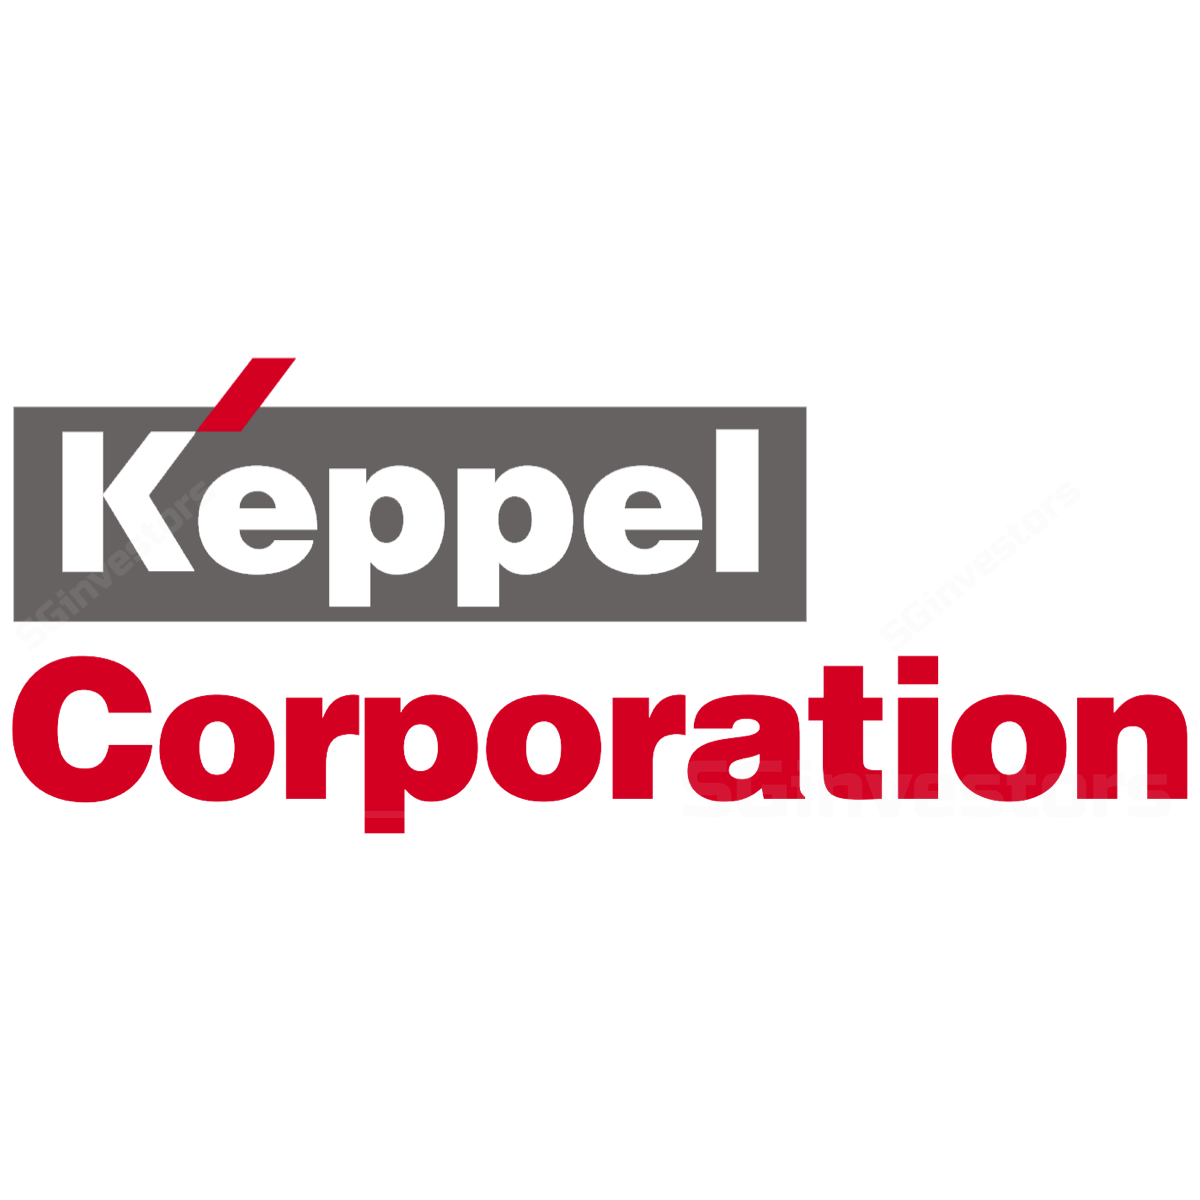 Keppel Corporation (KEP SP) - UOB Kay Hian 2018-01-26: 4Q17 Laying The Foundations For A New Chapter